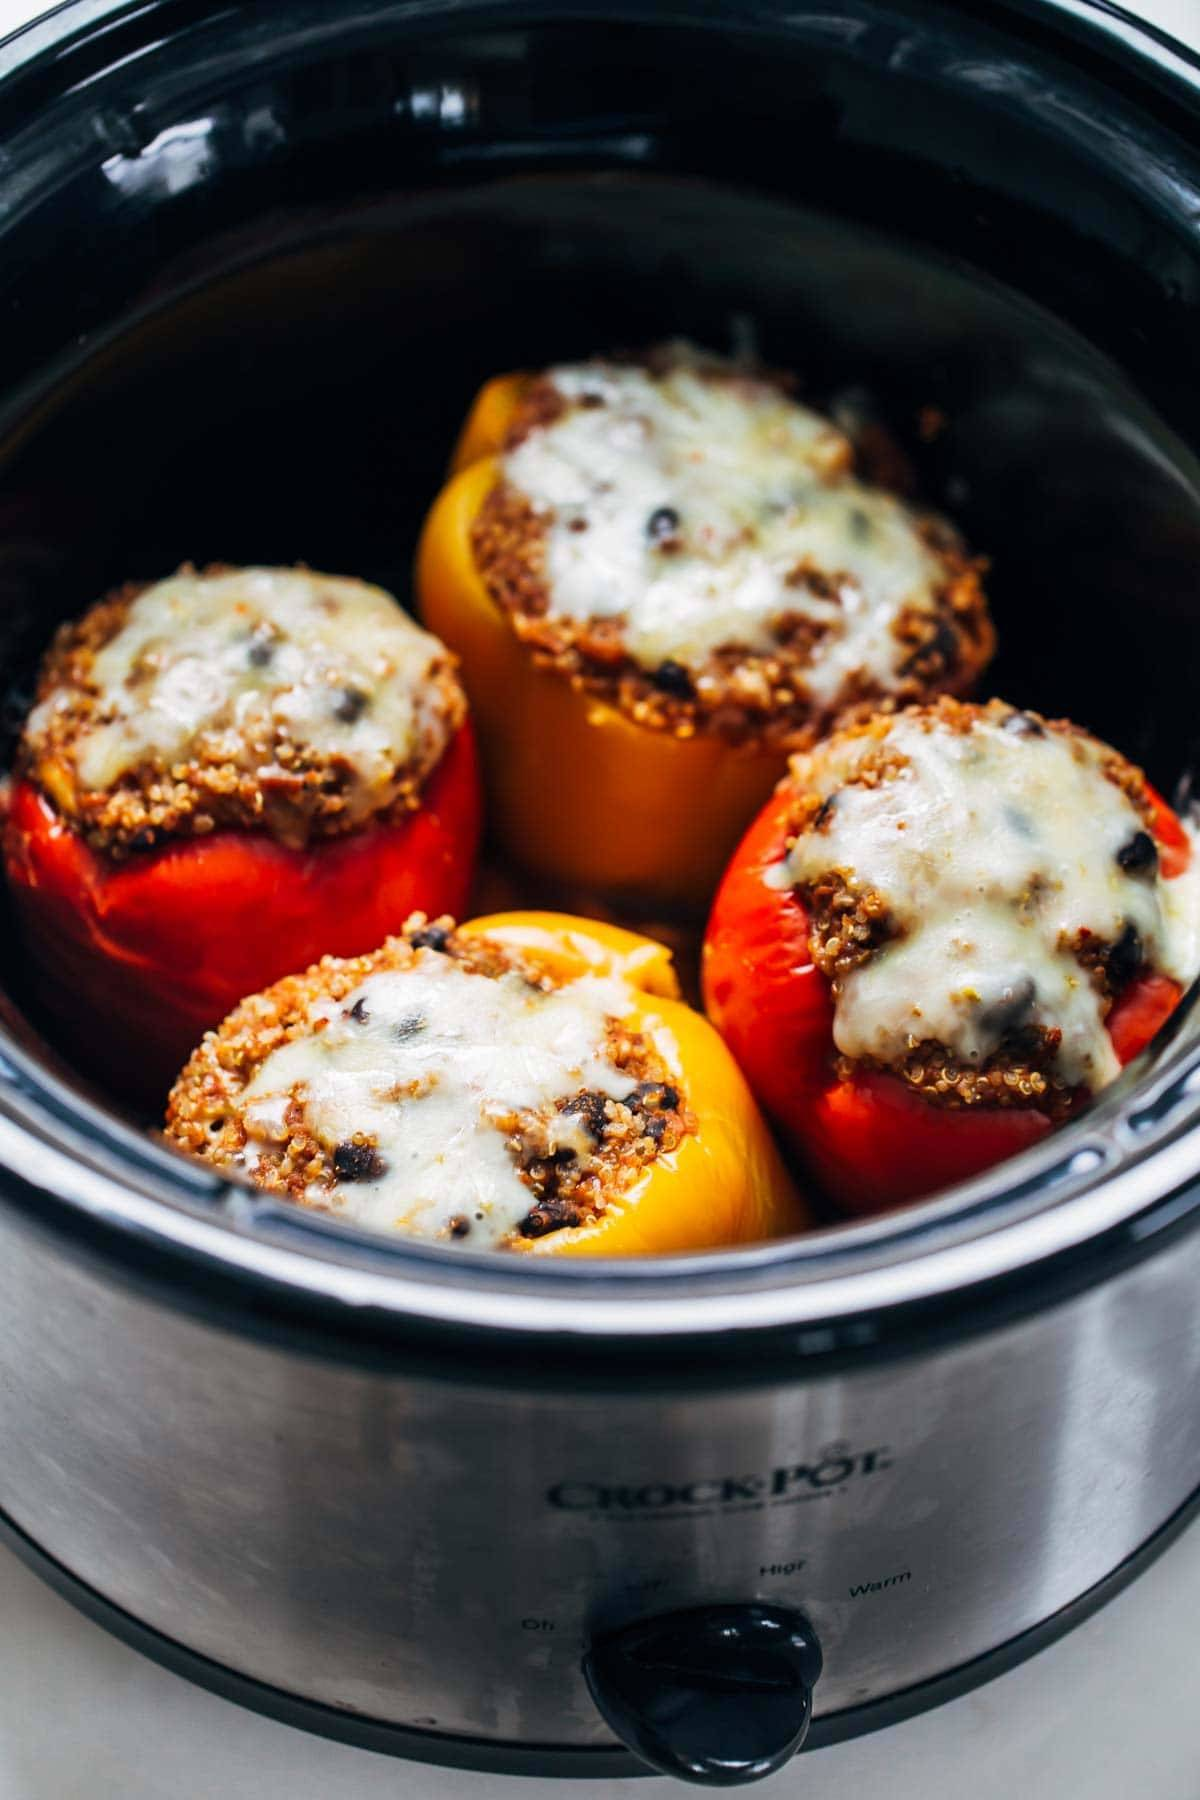 Quinoa Black Bean Crockpot Stuffed Peppers in a crockpot.